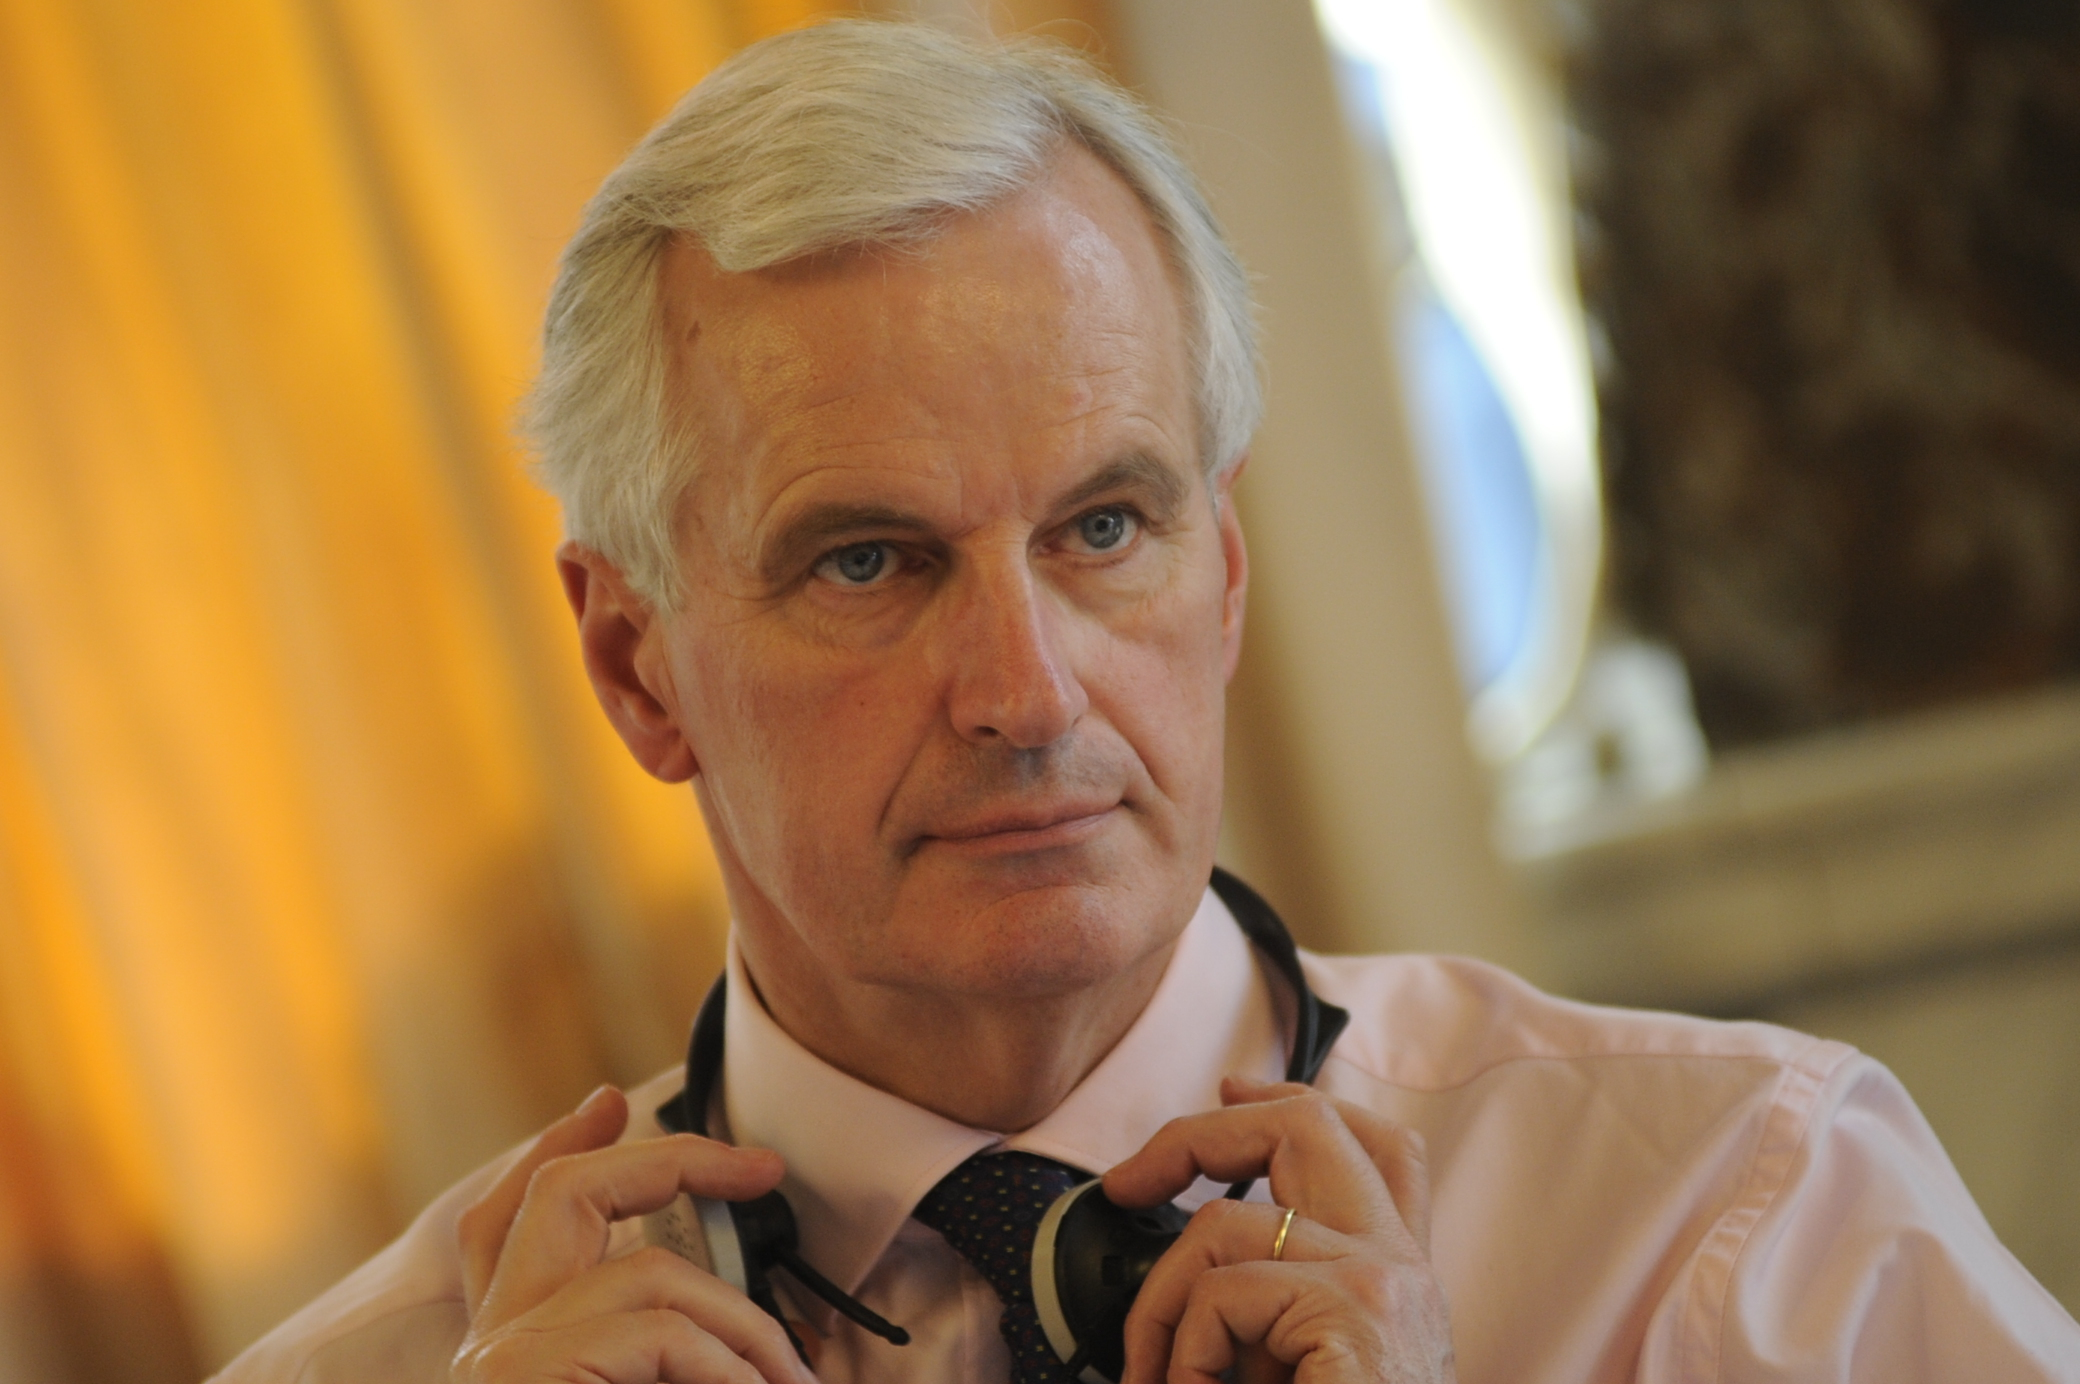 Michel Barnier At European Peoples Party Summit March 2010